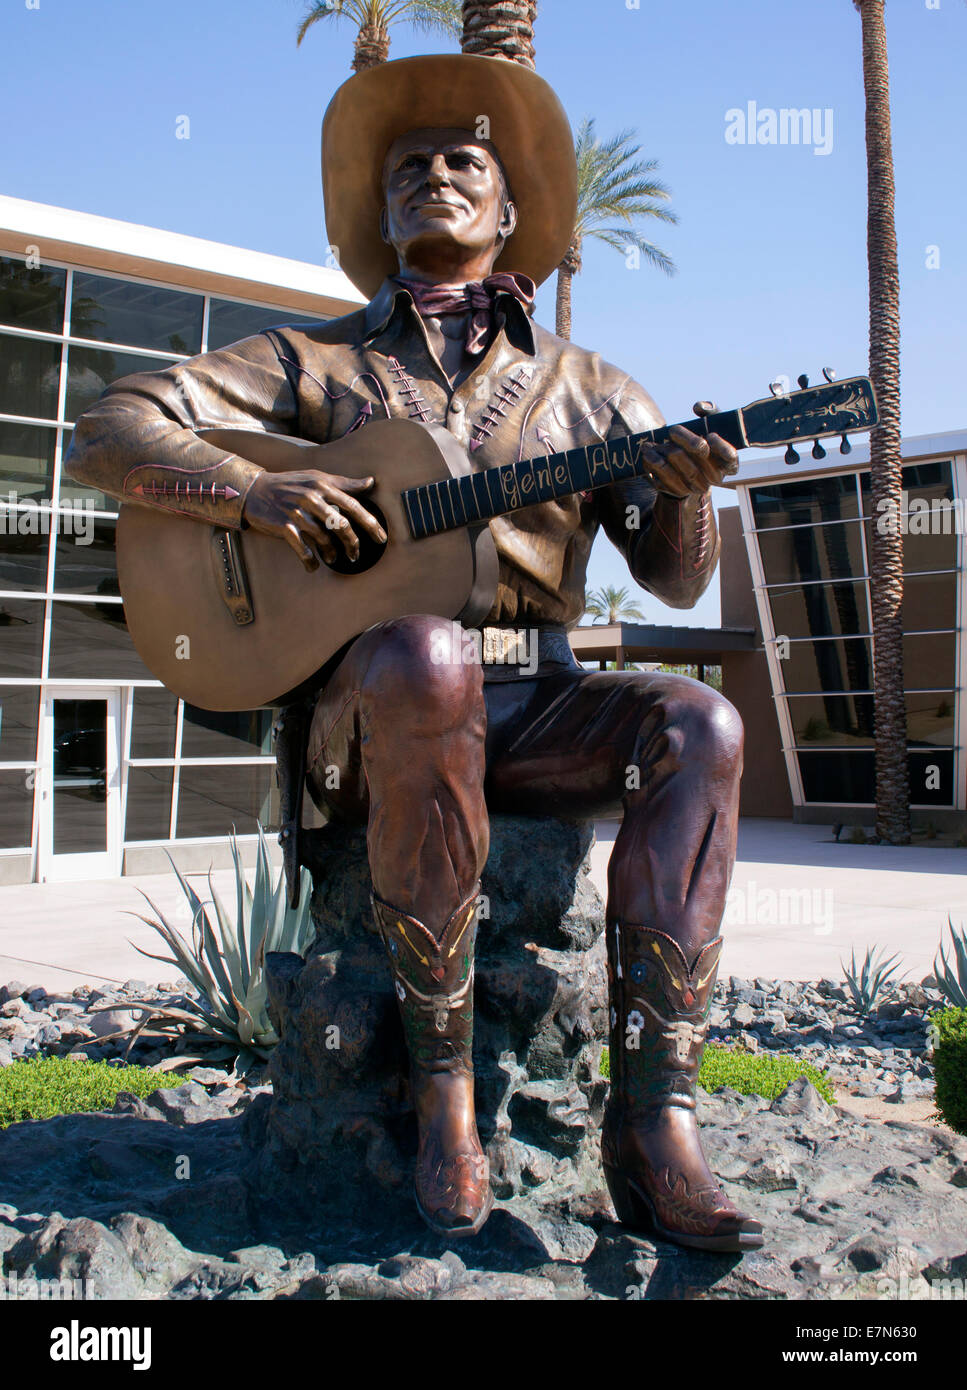 Gene Autry statue in Palm Springs California - Stock Image